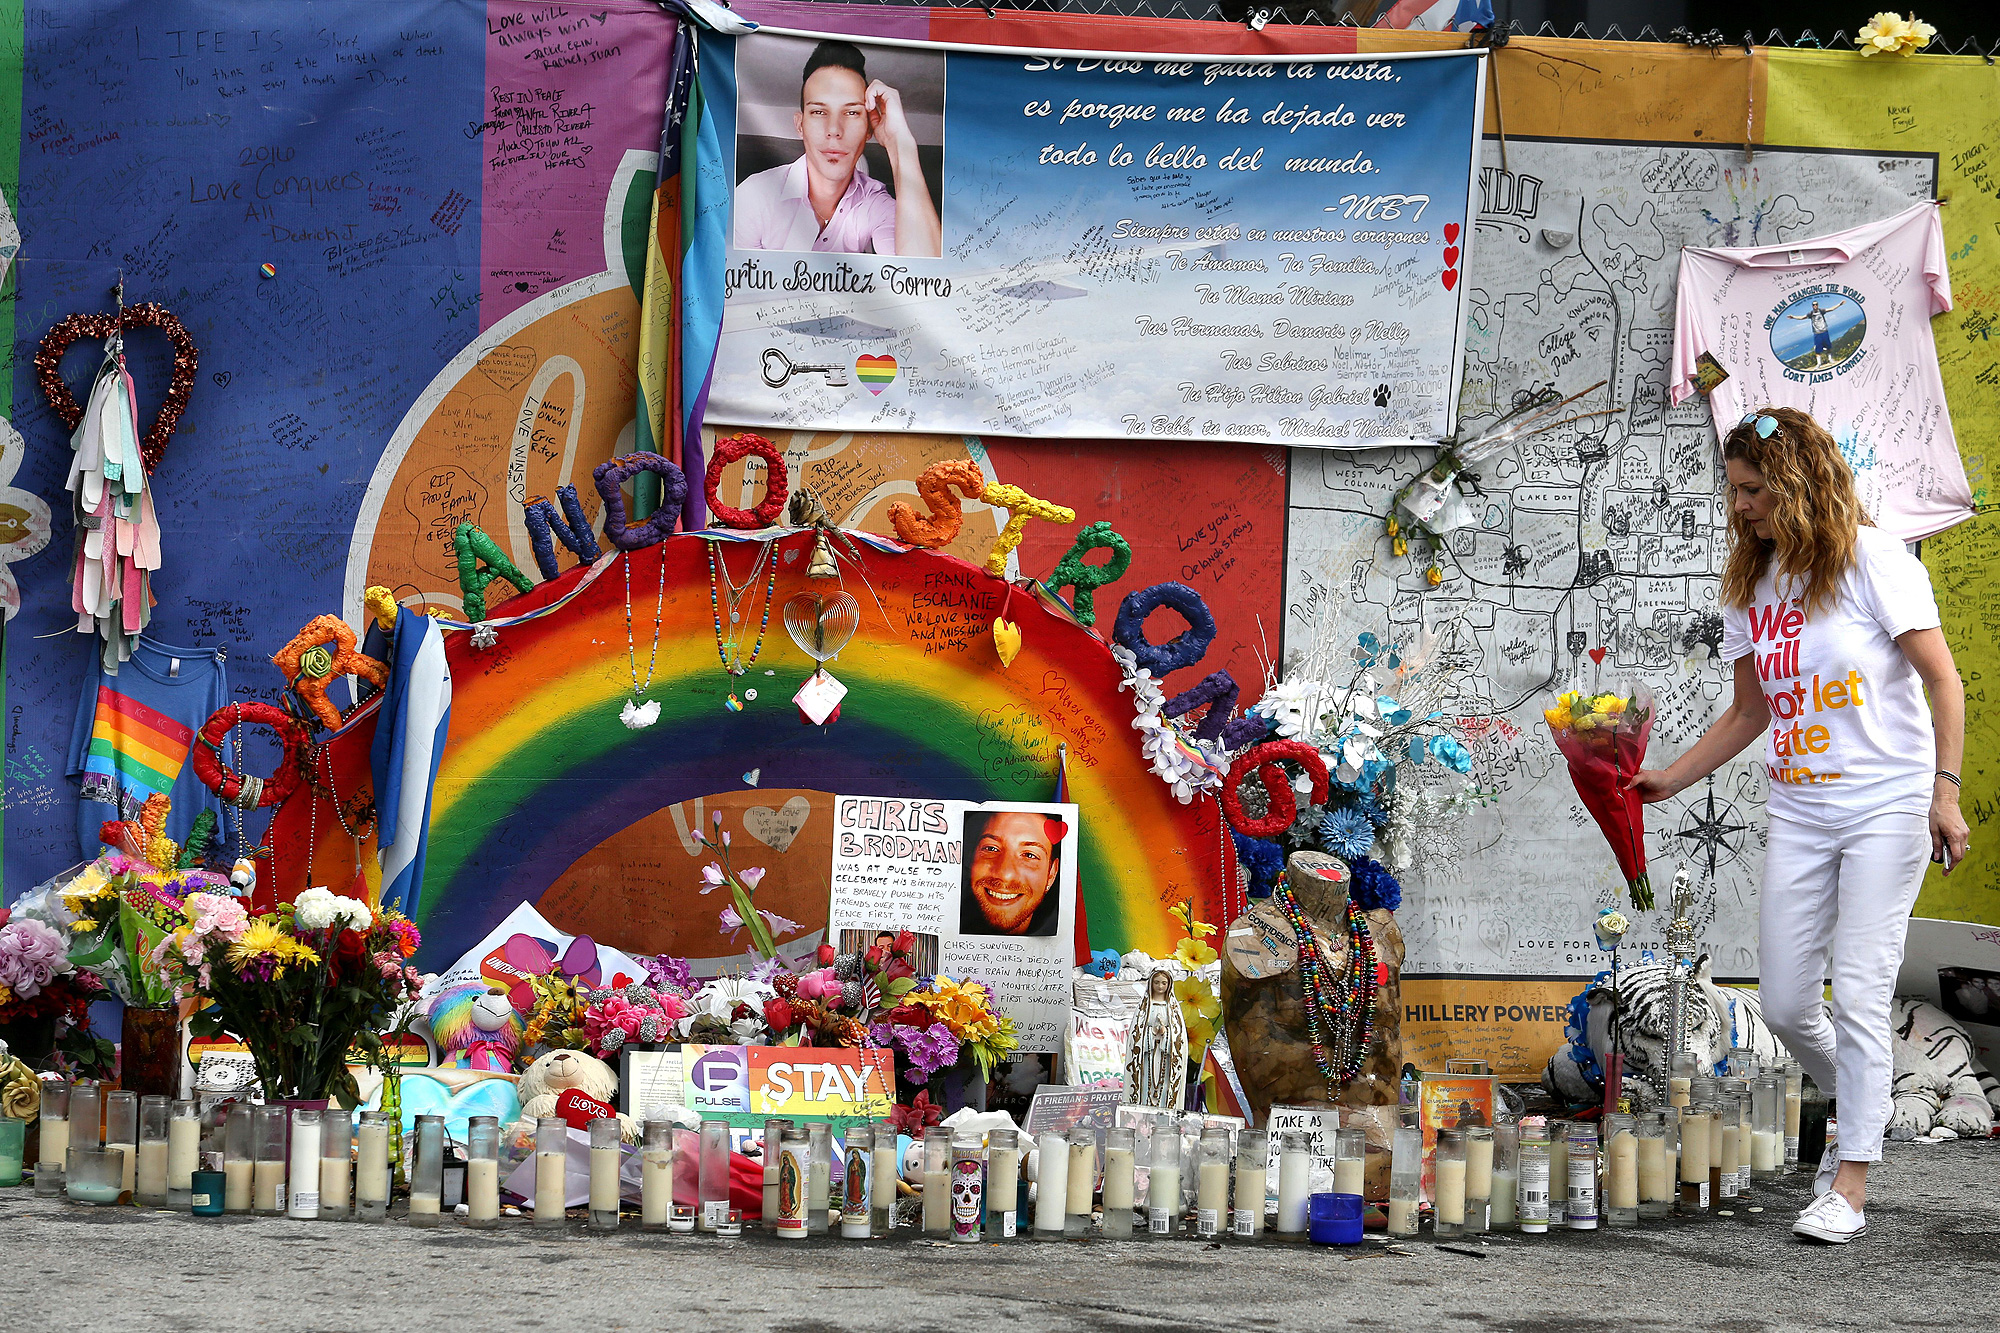 Pulse hit the LGBT community of color hardest. One year later, it's a struggle to heal.